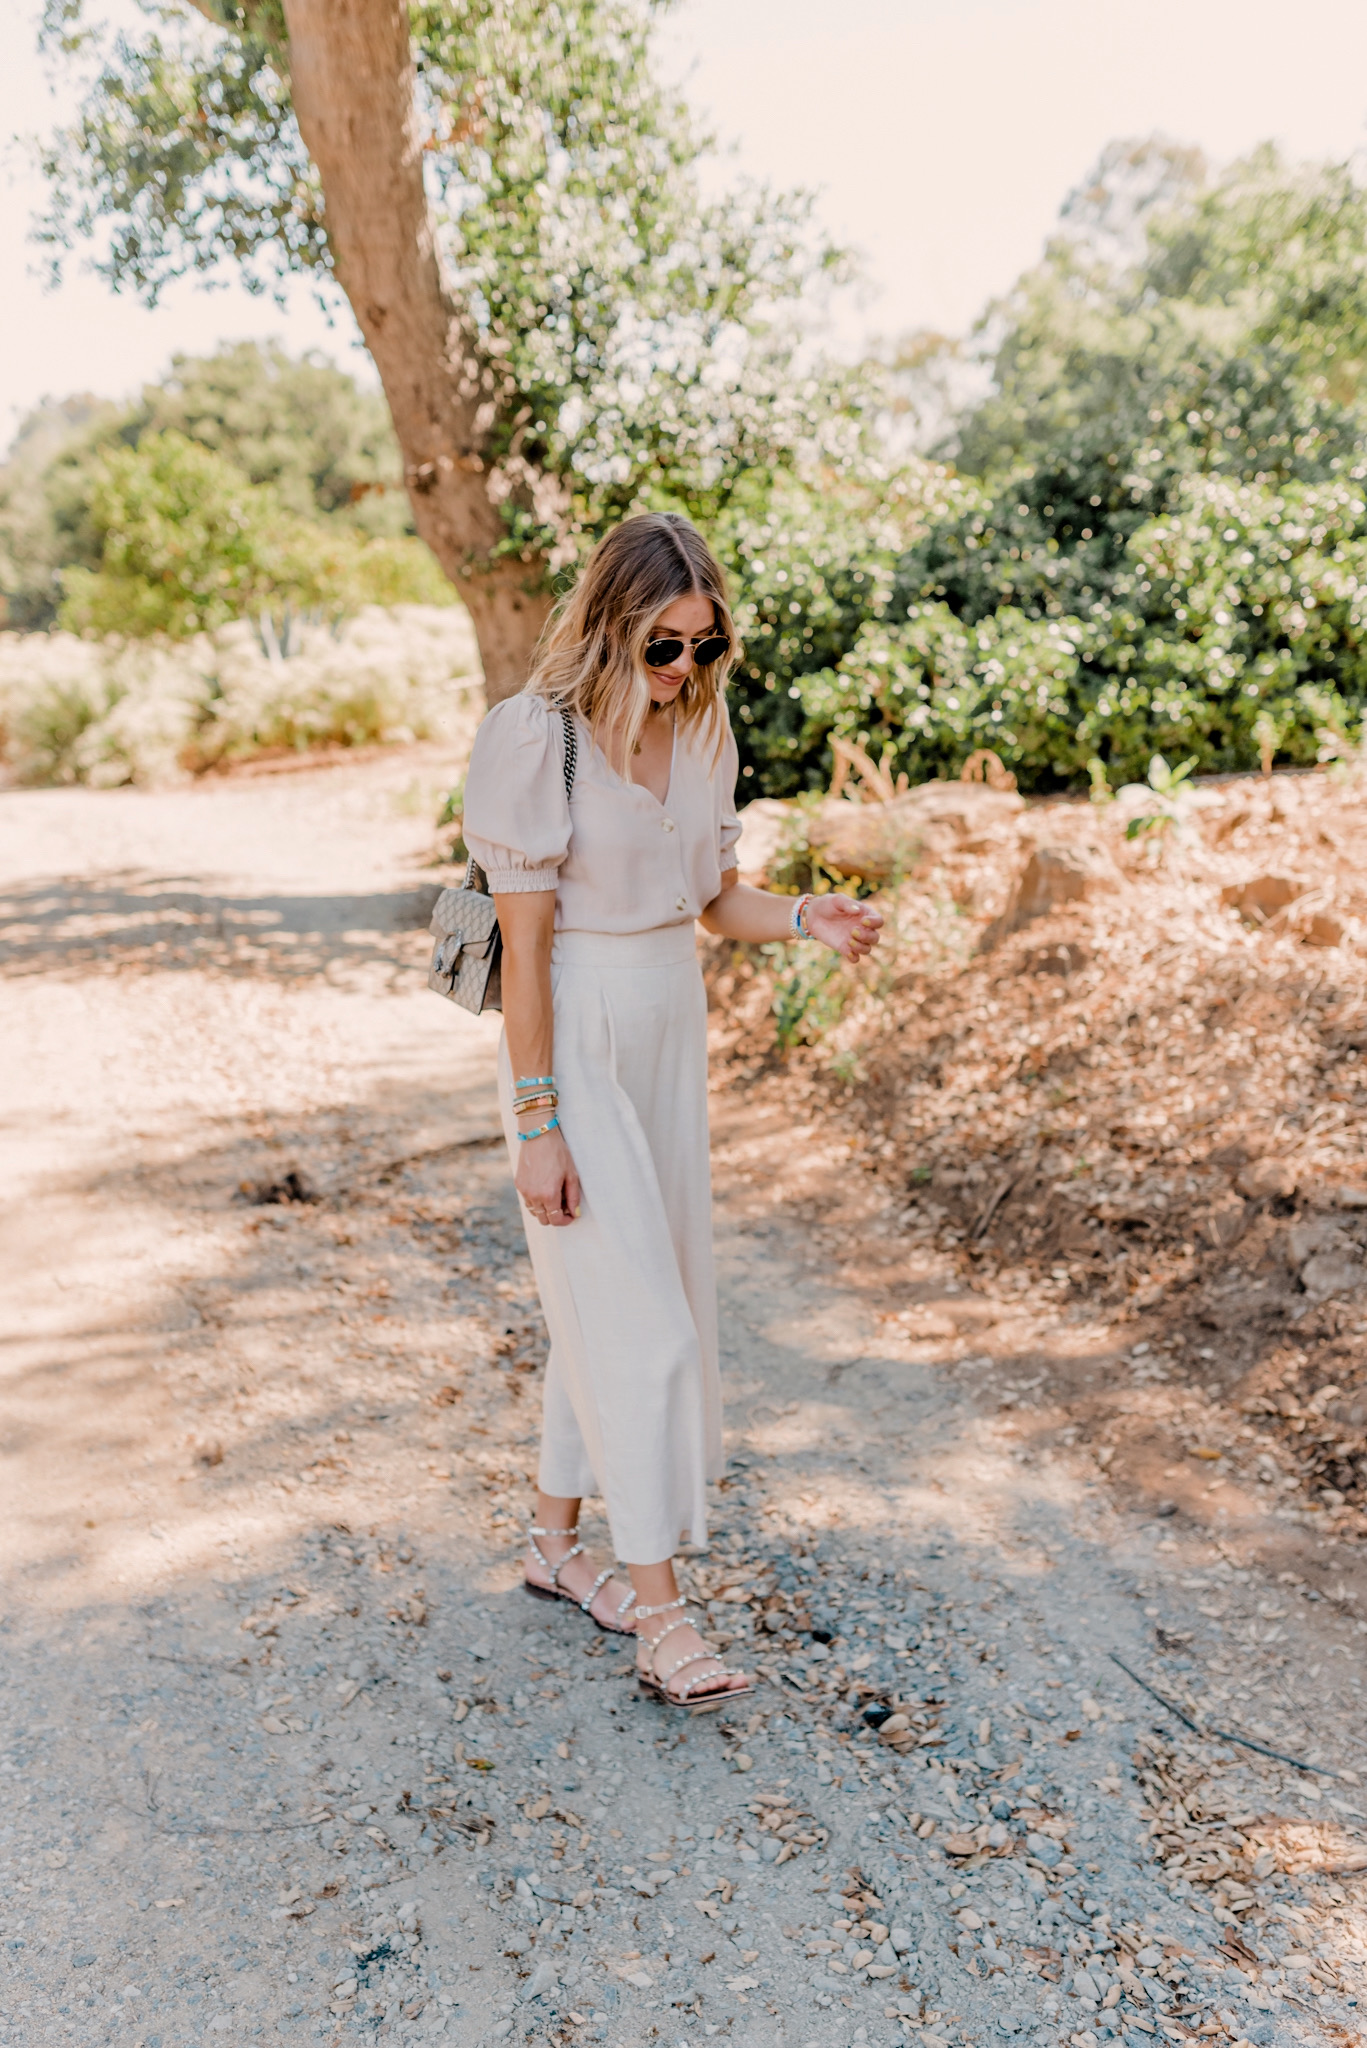 Neutral Colors Clothes by popular San Diego fashion blog, Navy Grace: image of a woman walking outside and wearing a H&M Puff-sleeved Blouse, H&M Wide-cut Pants, Steve Madden TRAVEL TAN sandals, Ray-Ban sunglasses and holding a Gucci Dionysus GG Supreme mini bag.